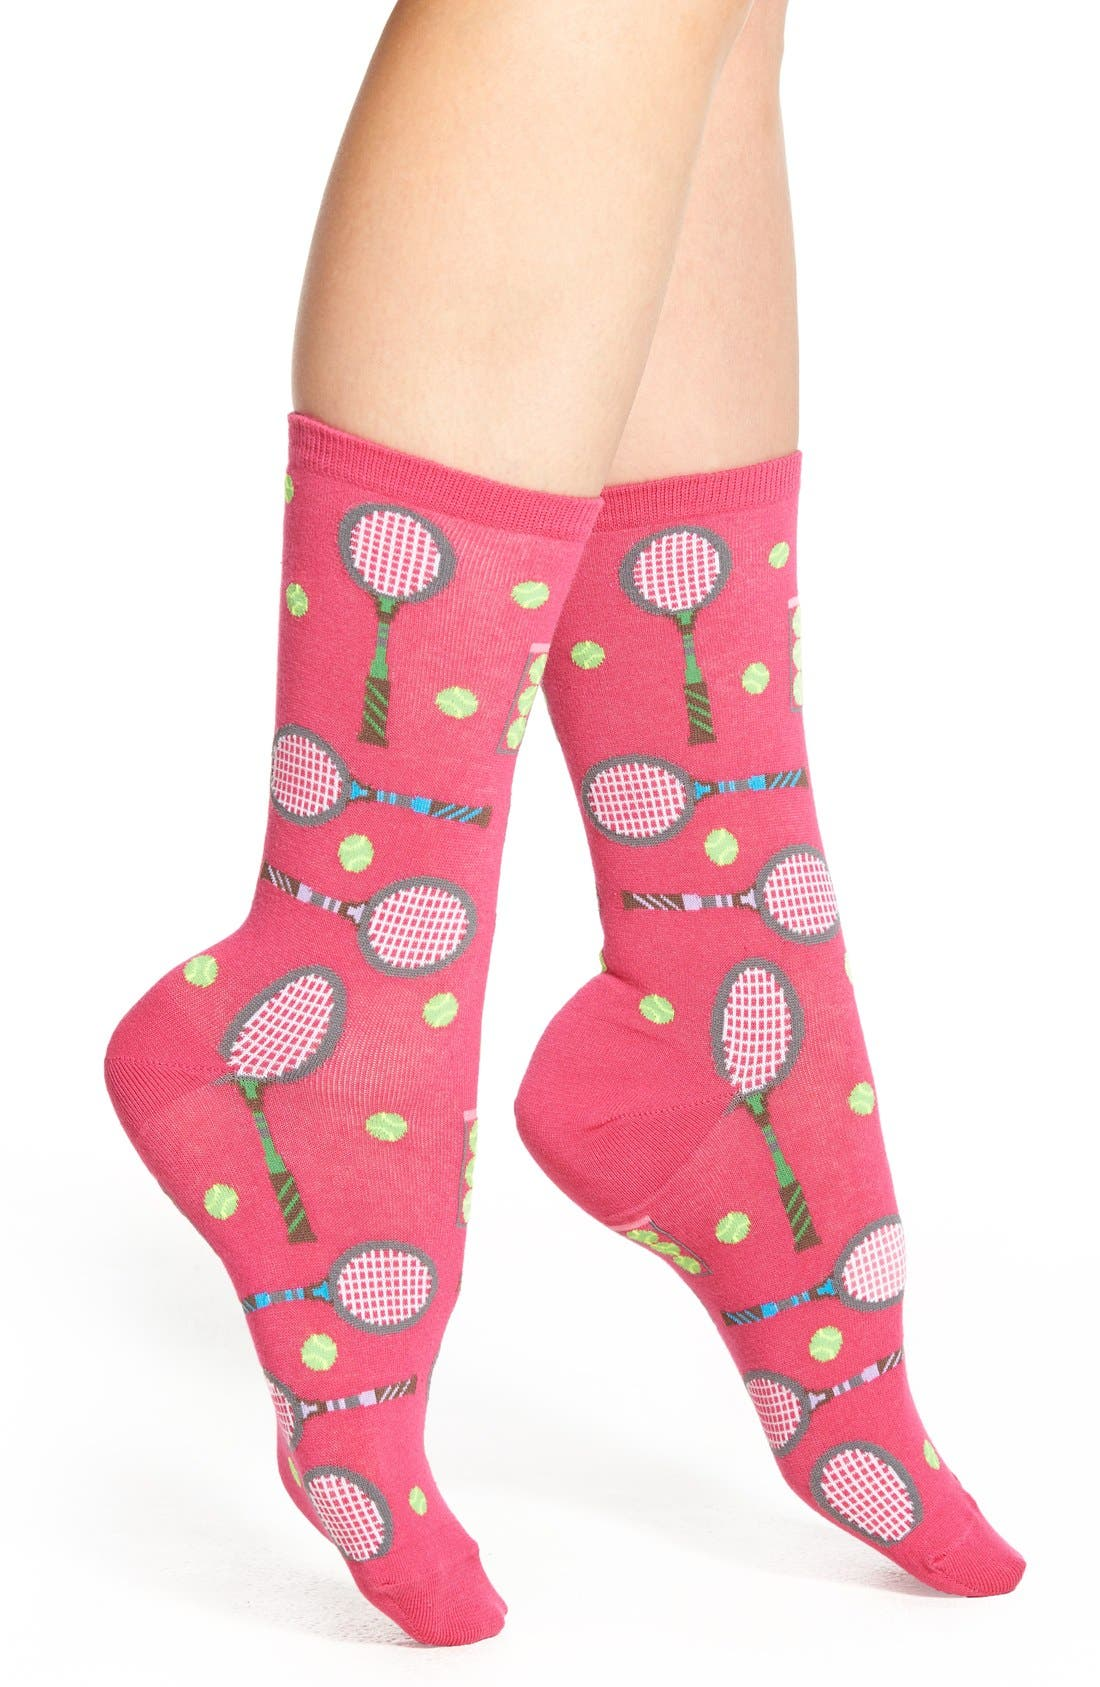 Alternate Image 1 Selected - Hot Sox 'Tennis' Crew Socks